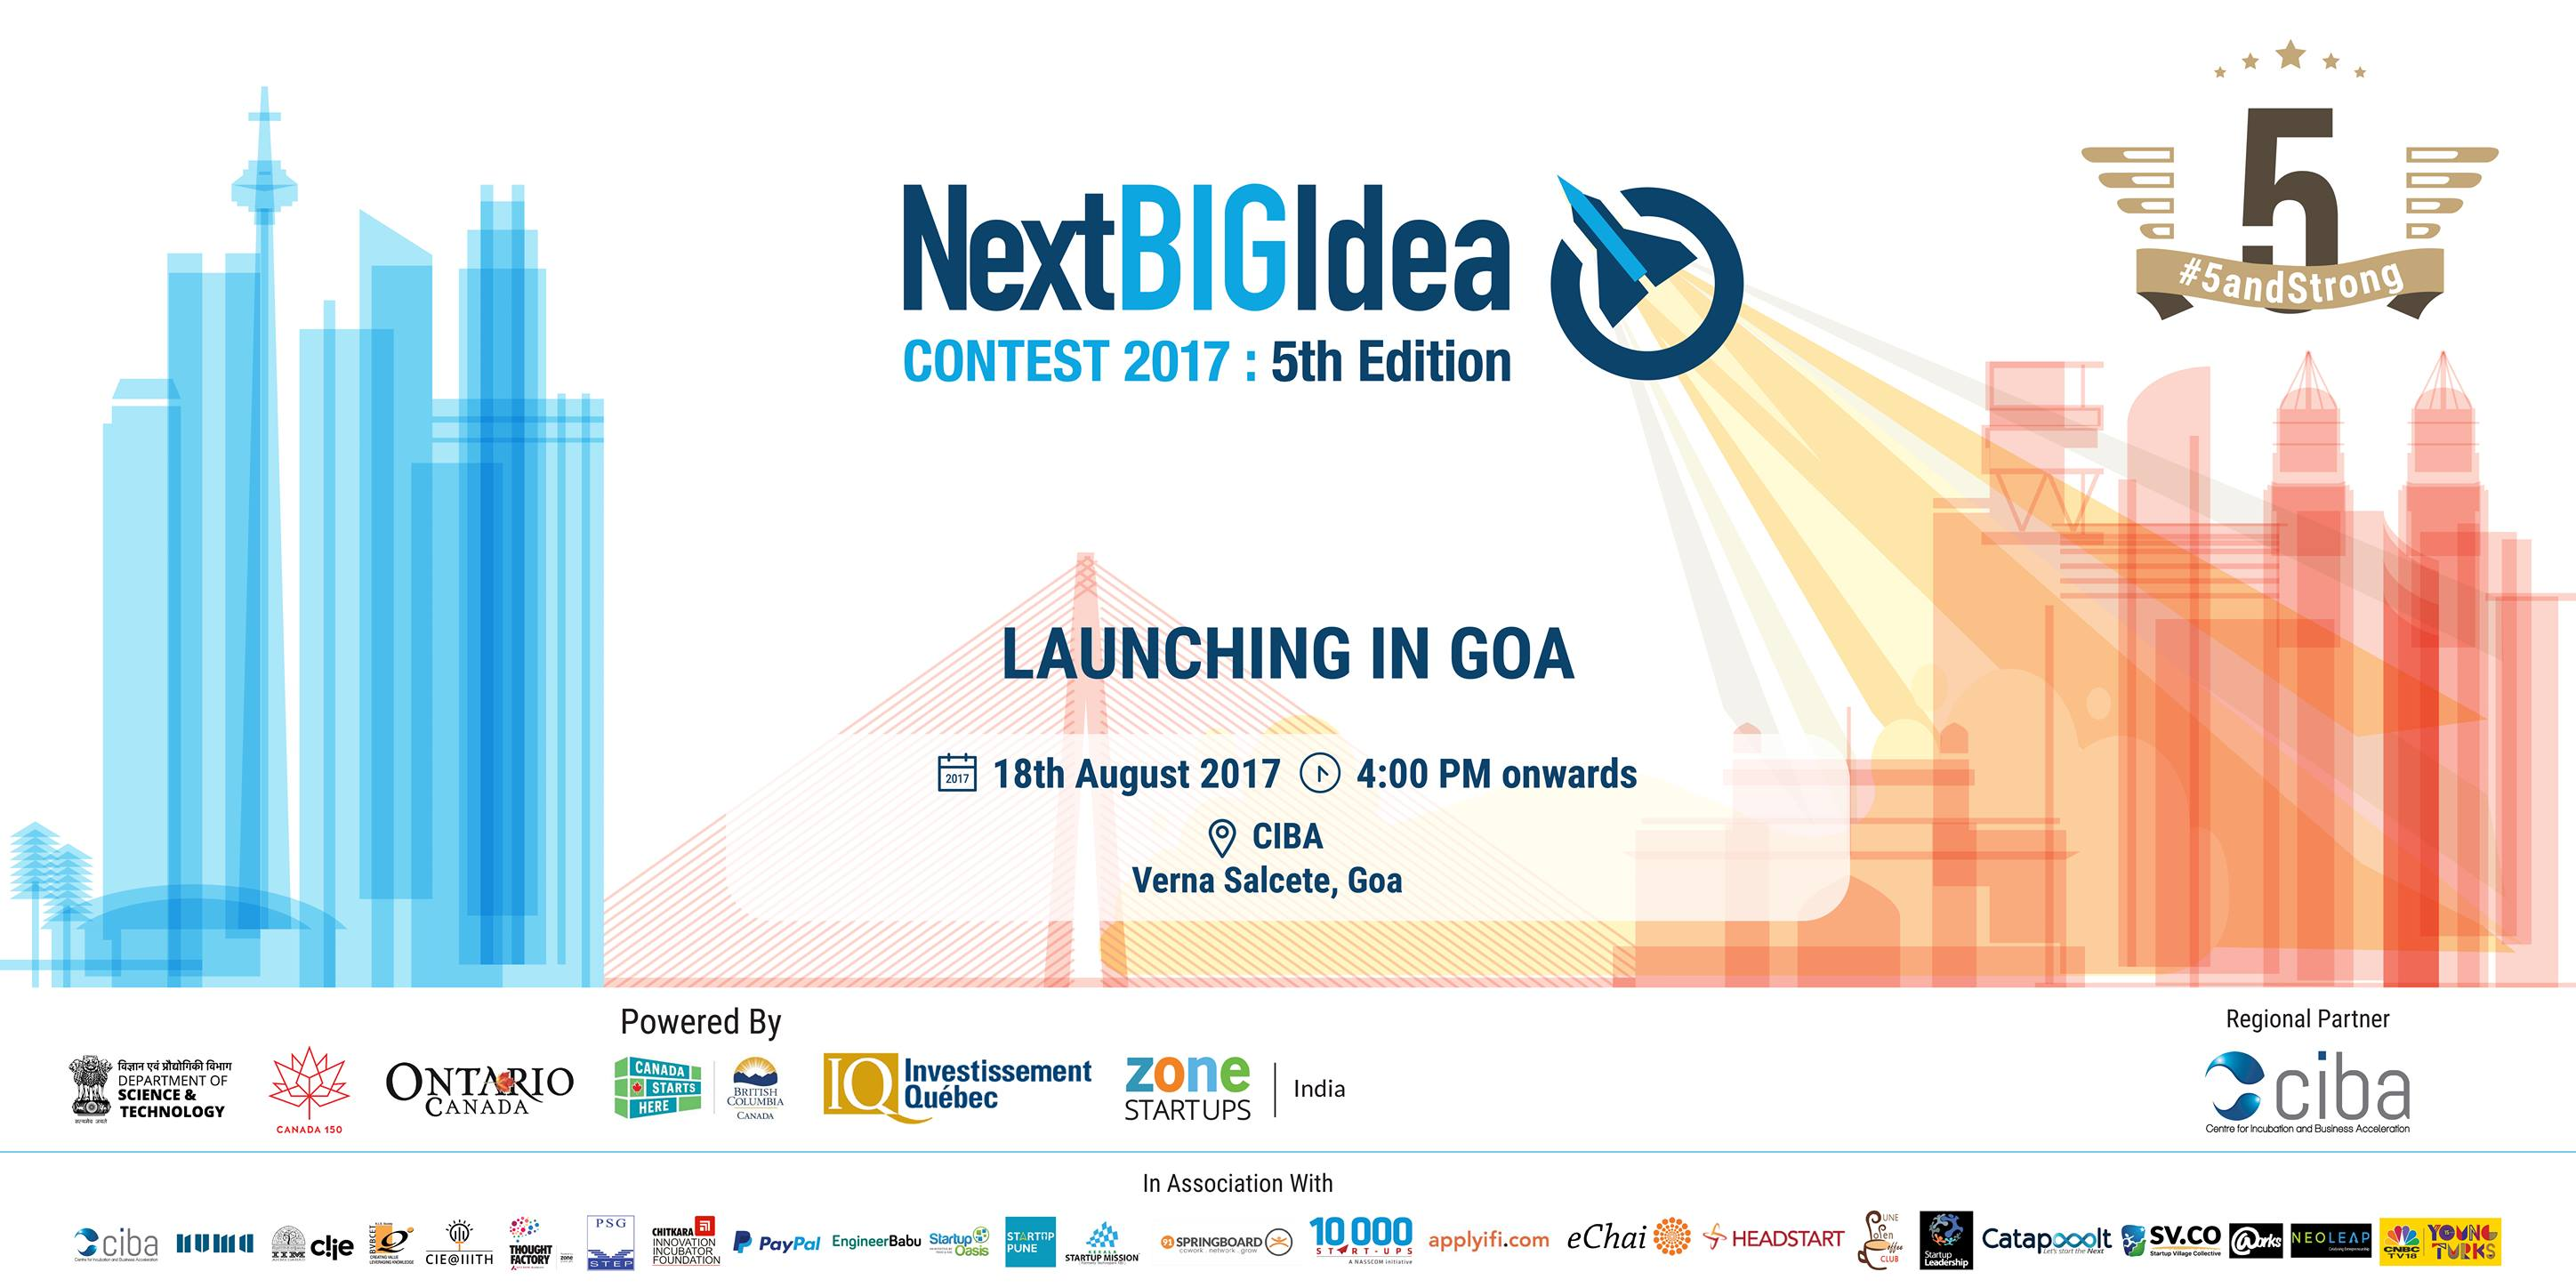 ciba-Next Big Idea Contest 2017-5th Edition